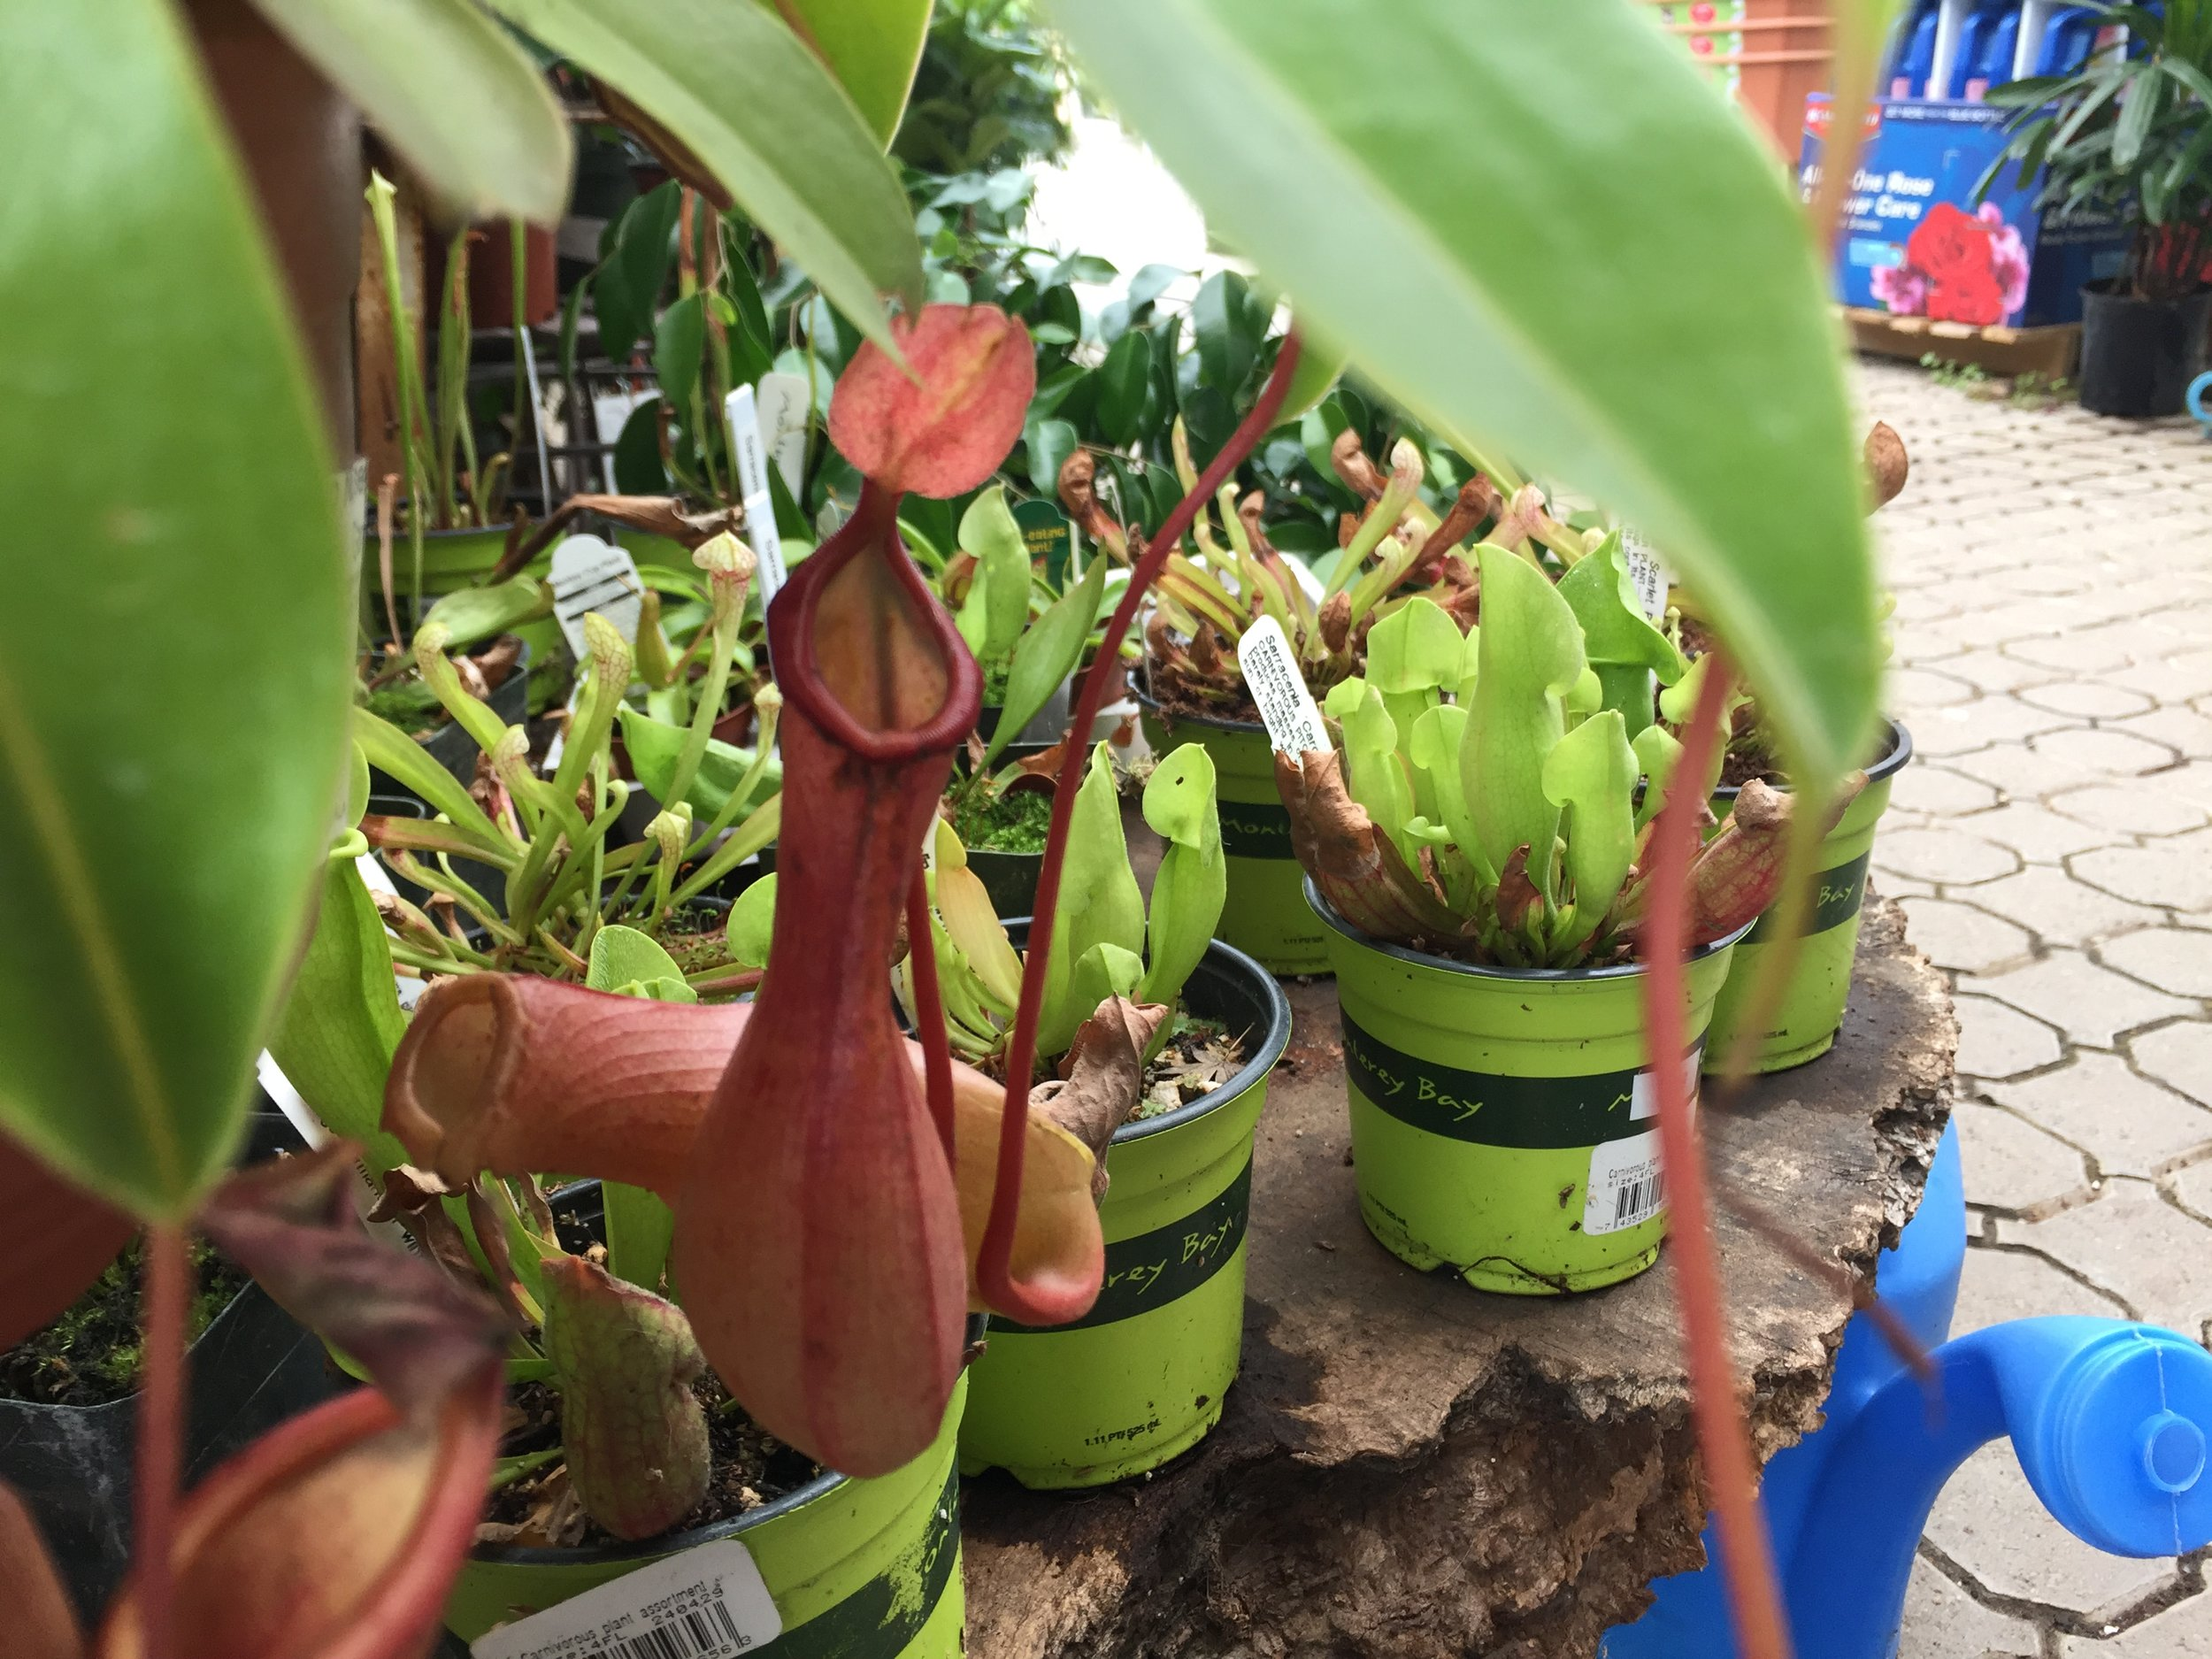 Nepenthes hybrid - Tropical Pitcher Plant